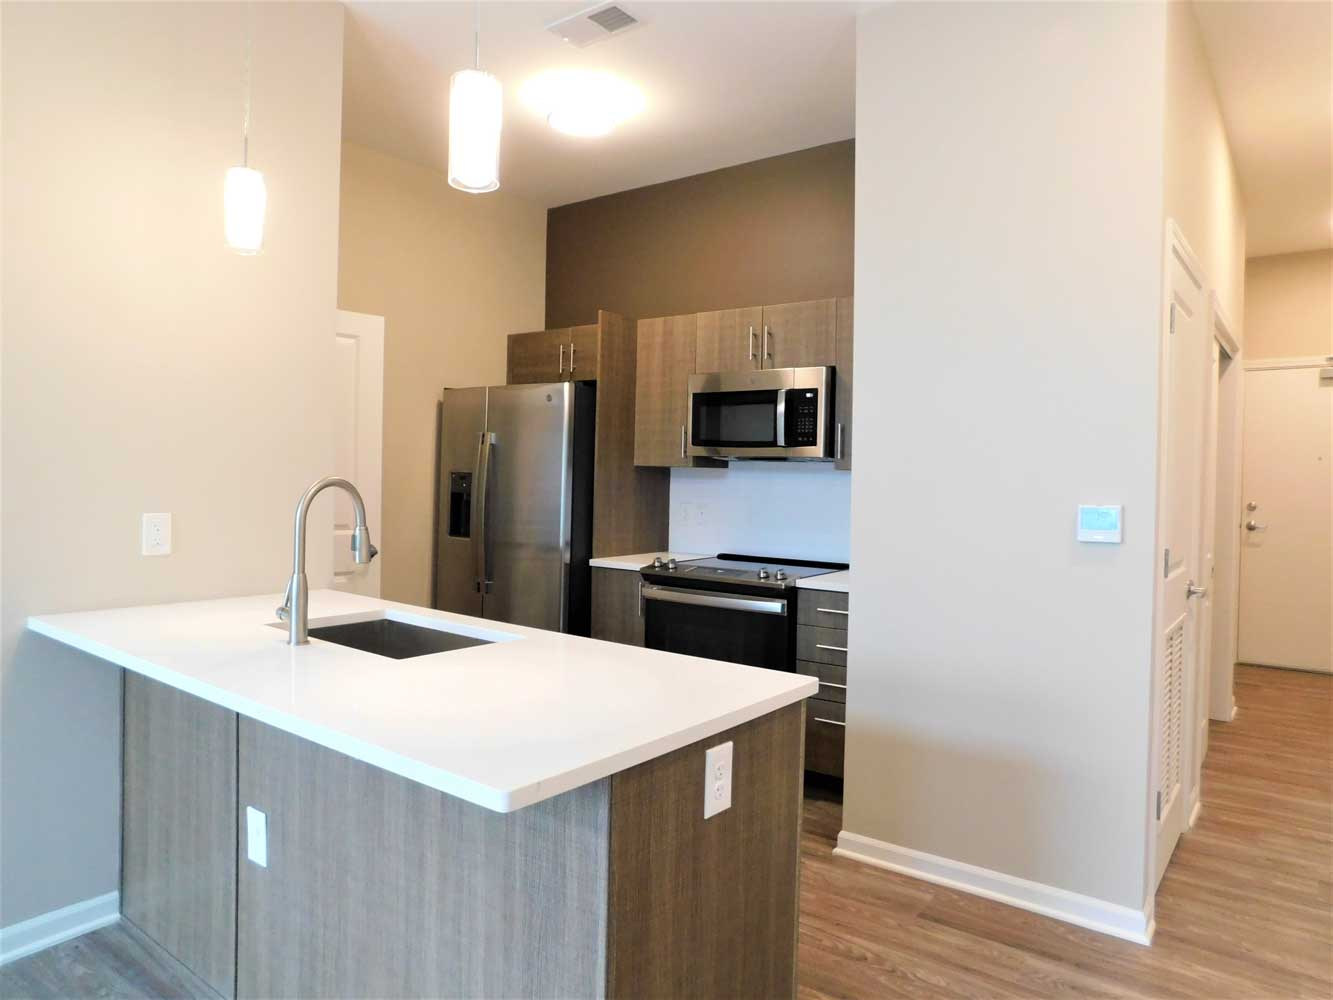 Stainless Steel Kitchen Equipments at Midtown Plaza Apartments in Kansas City, MO